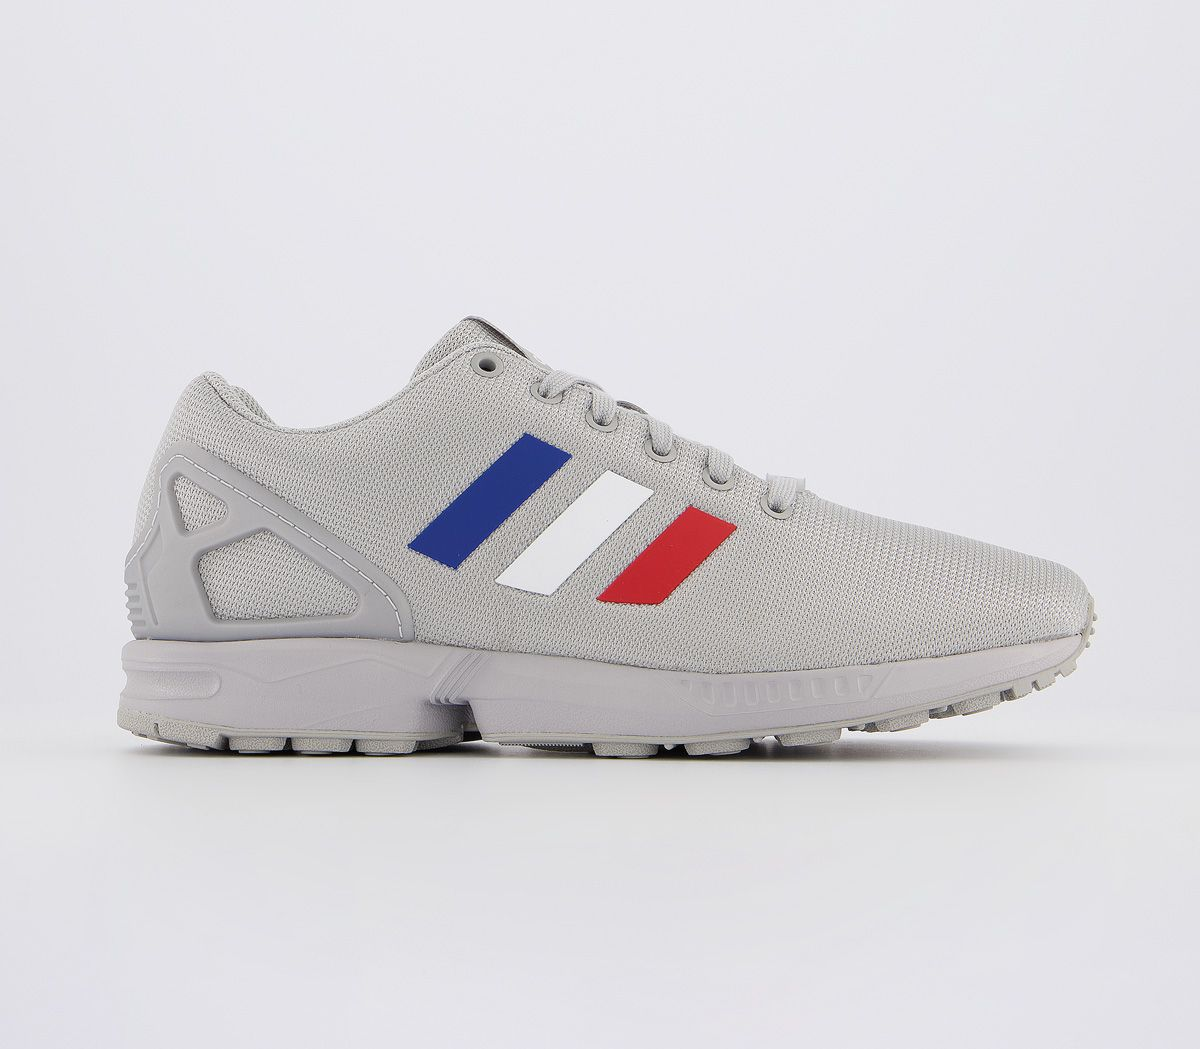 Adidas Zx Flux Trainers Grey White